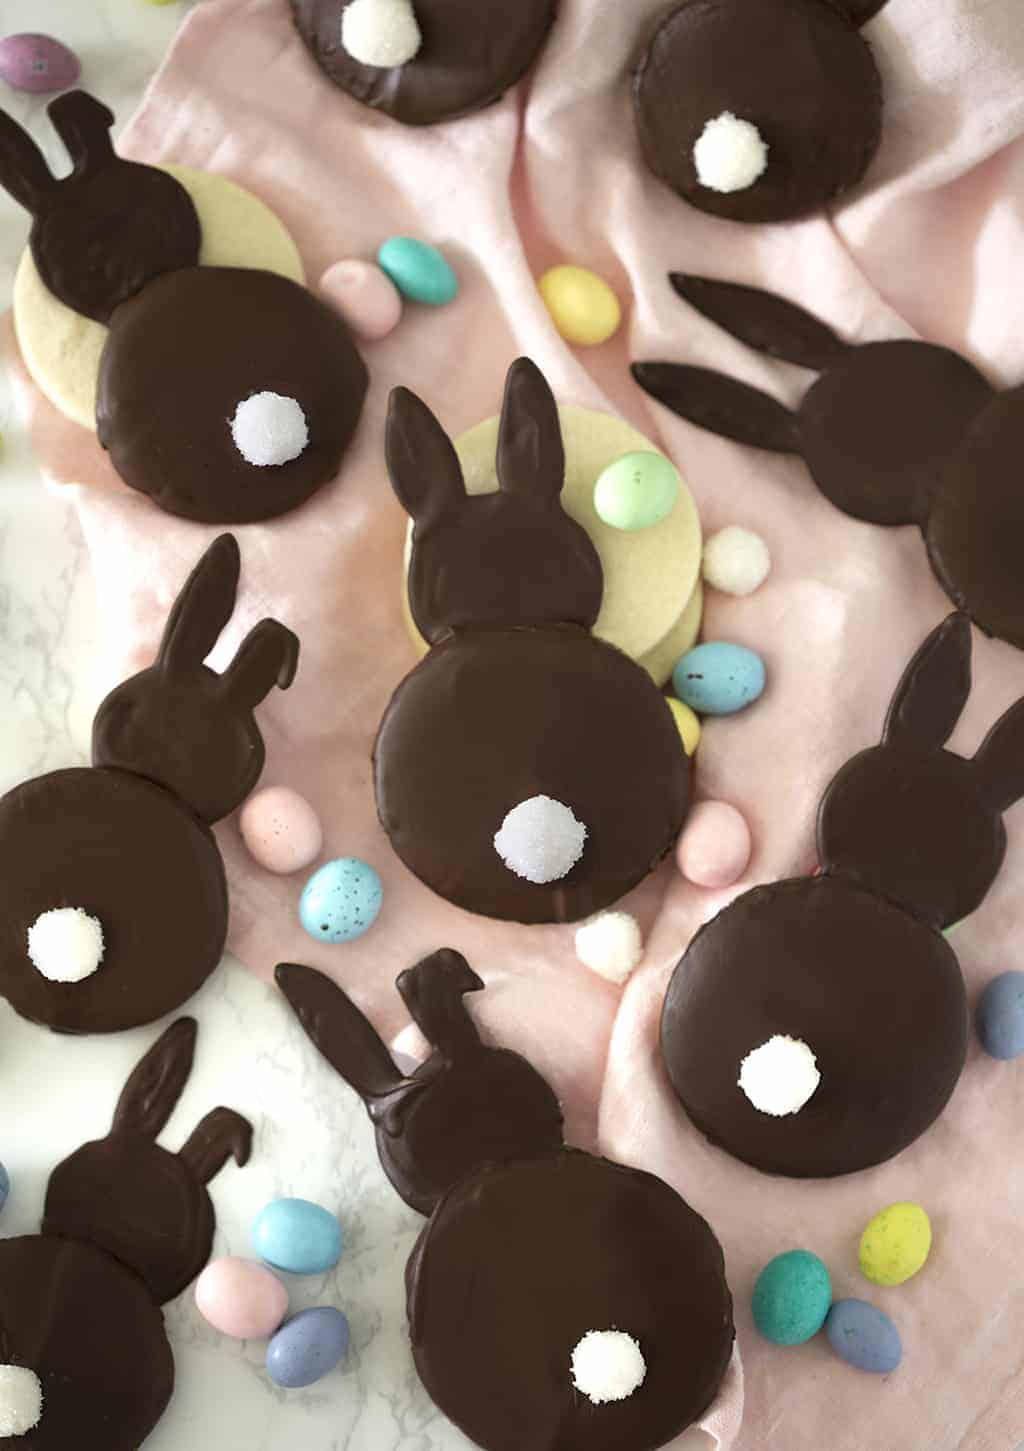 A photo of chocolate coated bunny cookies.